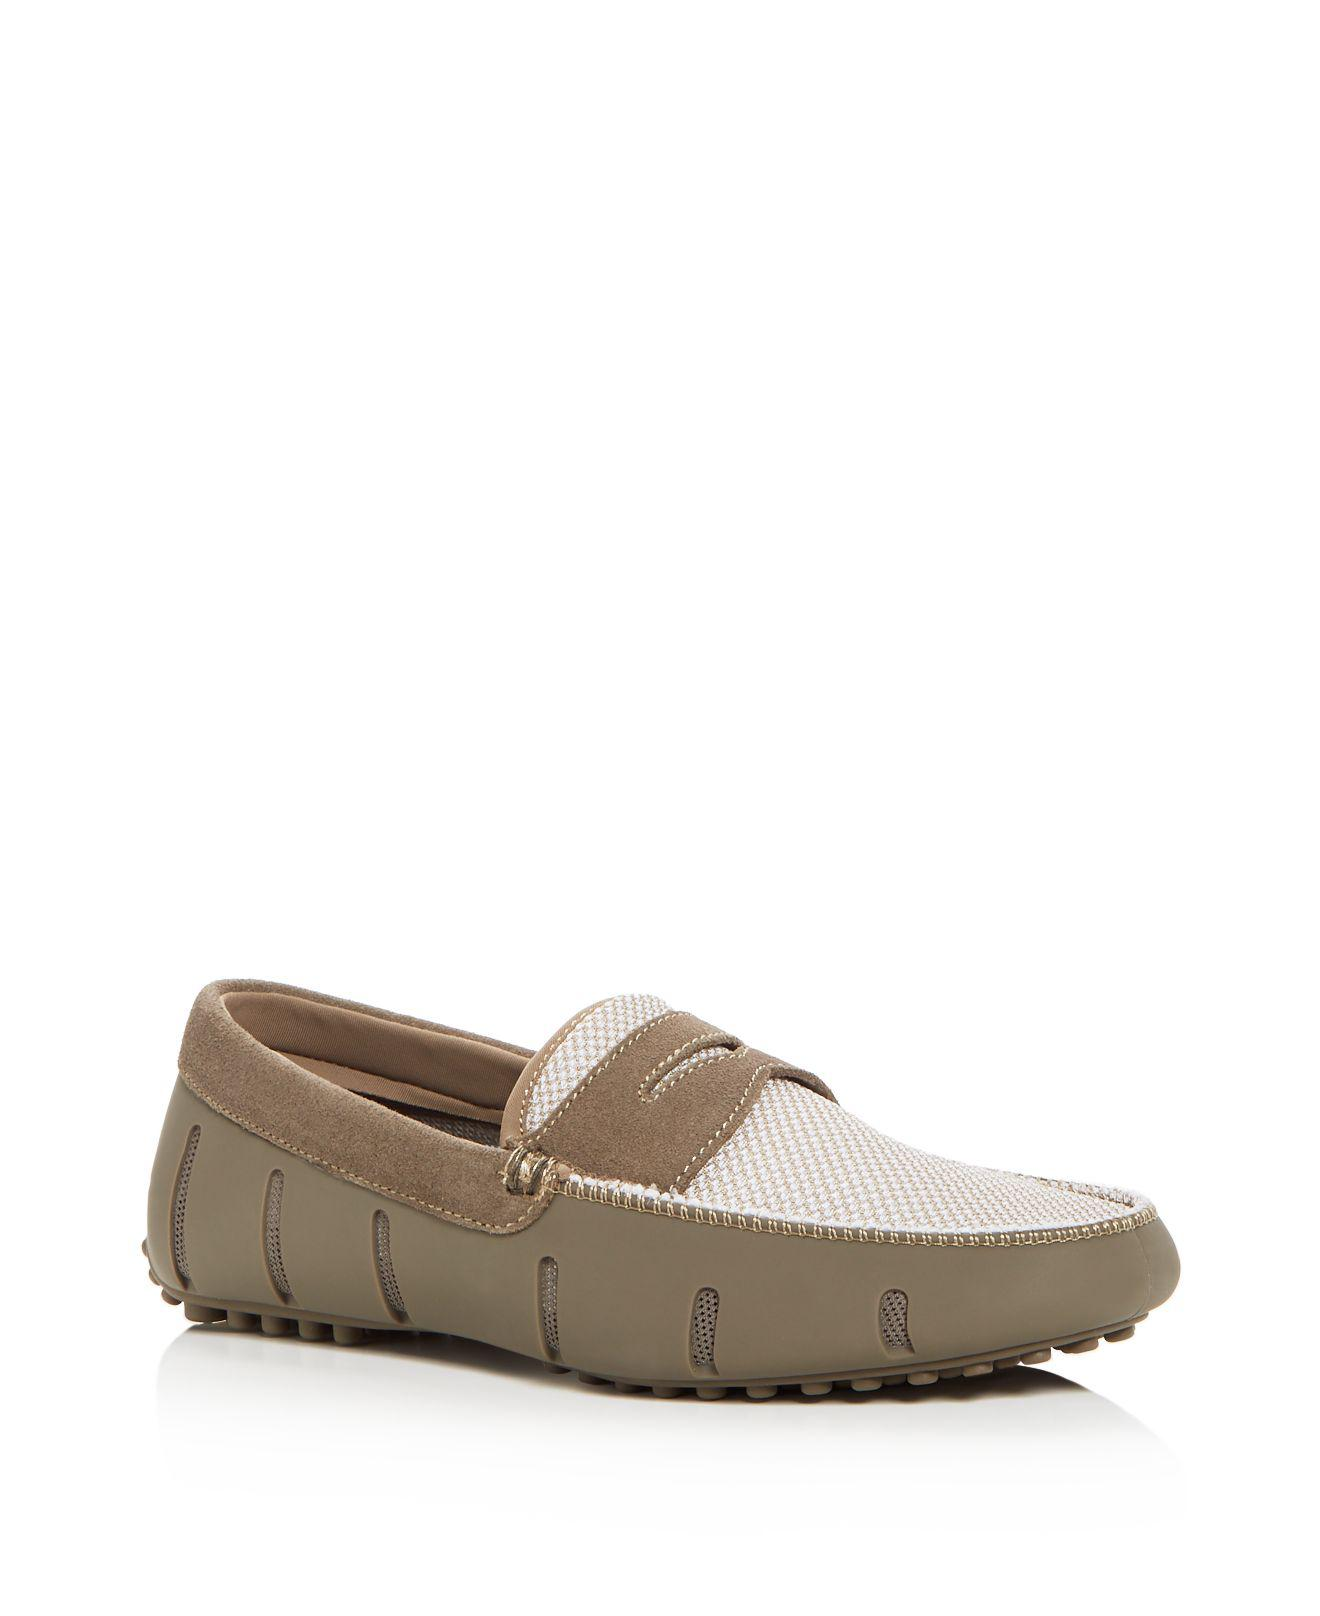 Swims Men's Penny Lux Loafers T83iJZNWDW